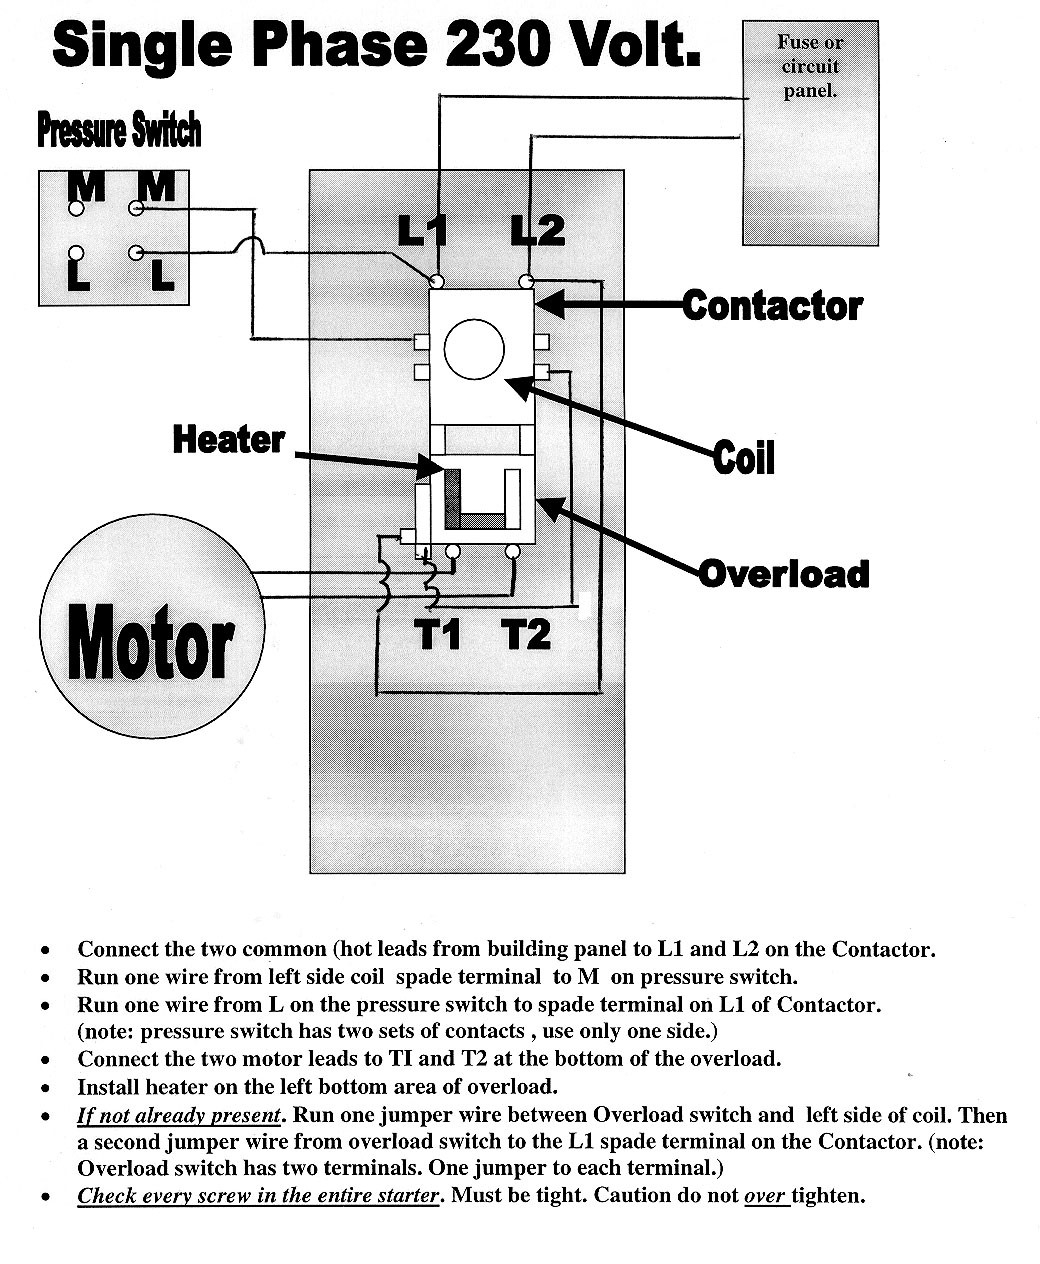 Motor Starter Wiring Diagram Pdf - Weg Motor Capacitor Wiring Diagrams Schematics and Baldor Diagram In Cutler Hammer Starter Wiring Diagram 10n